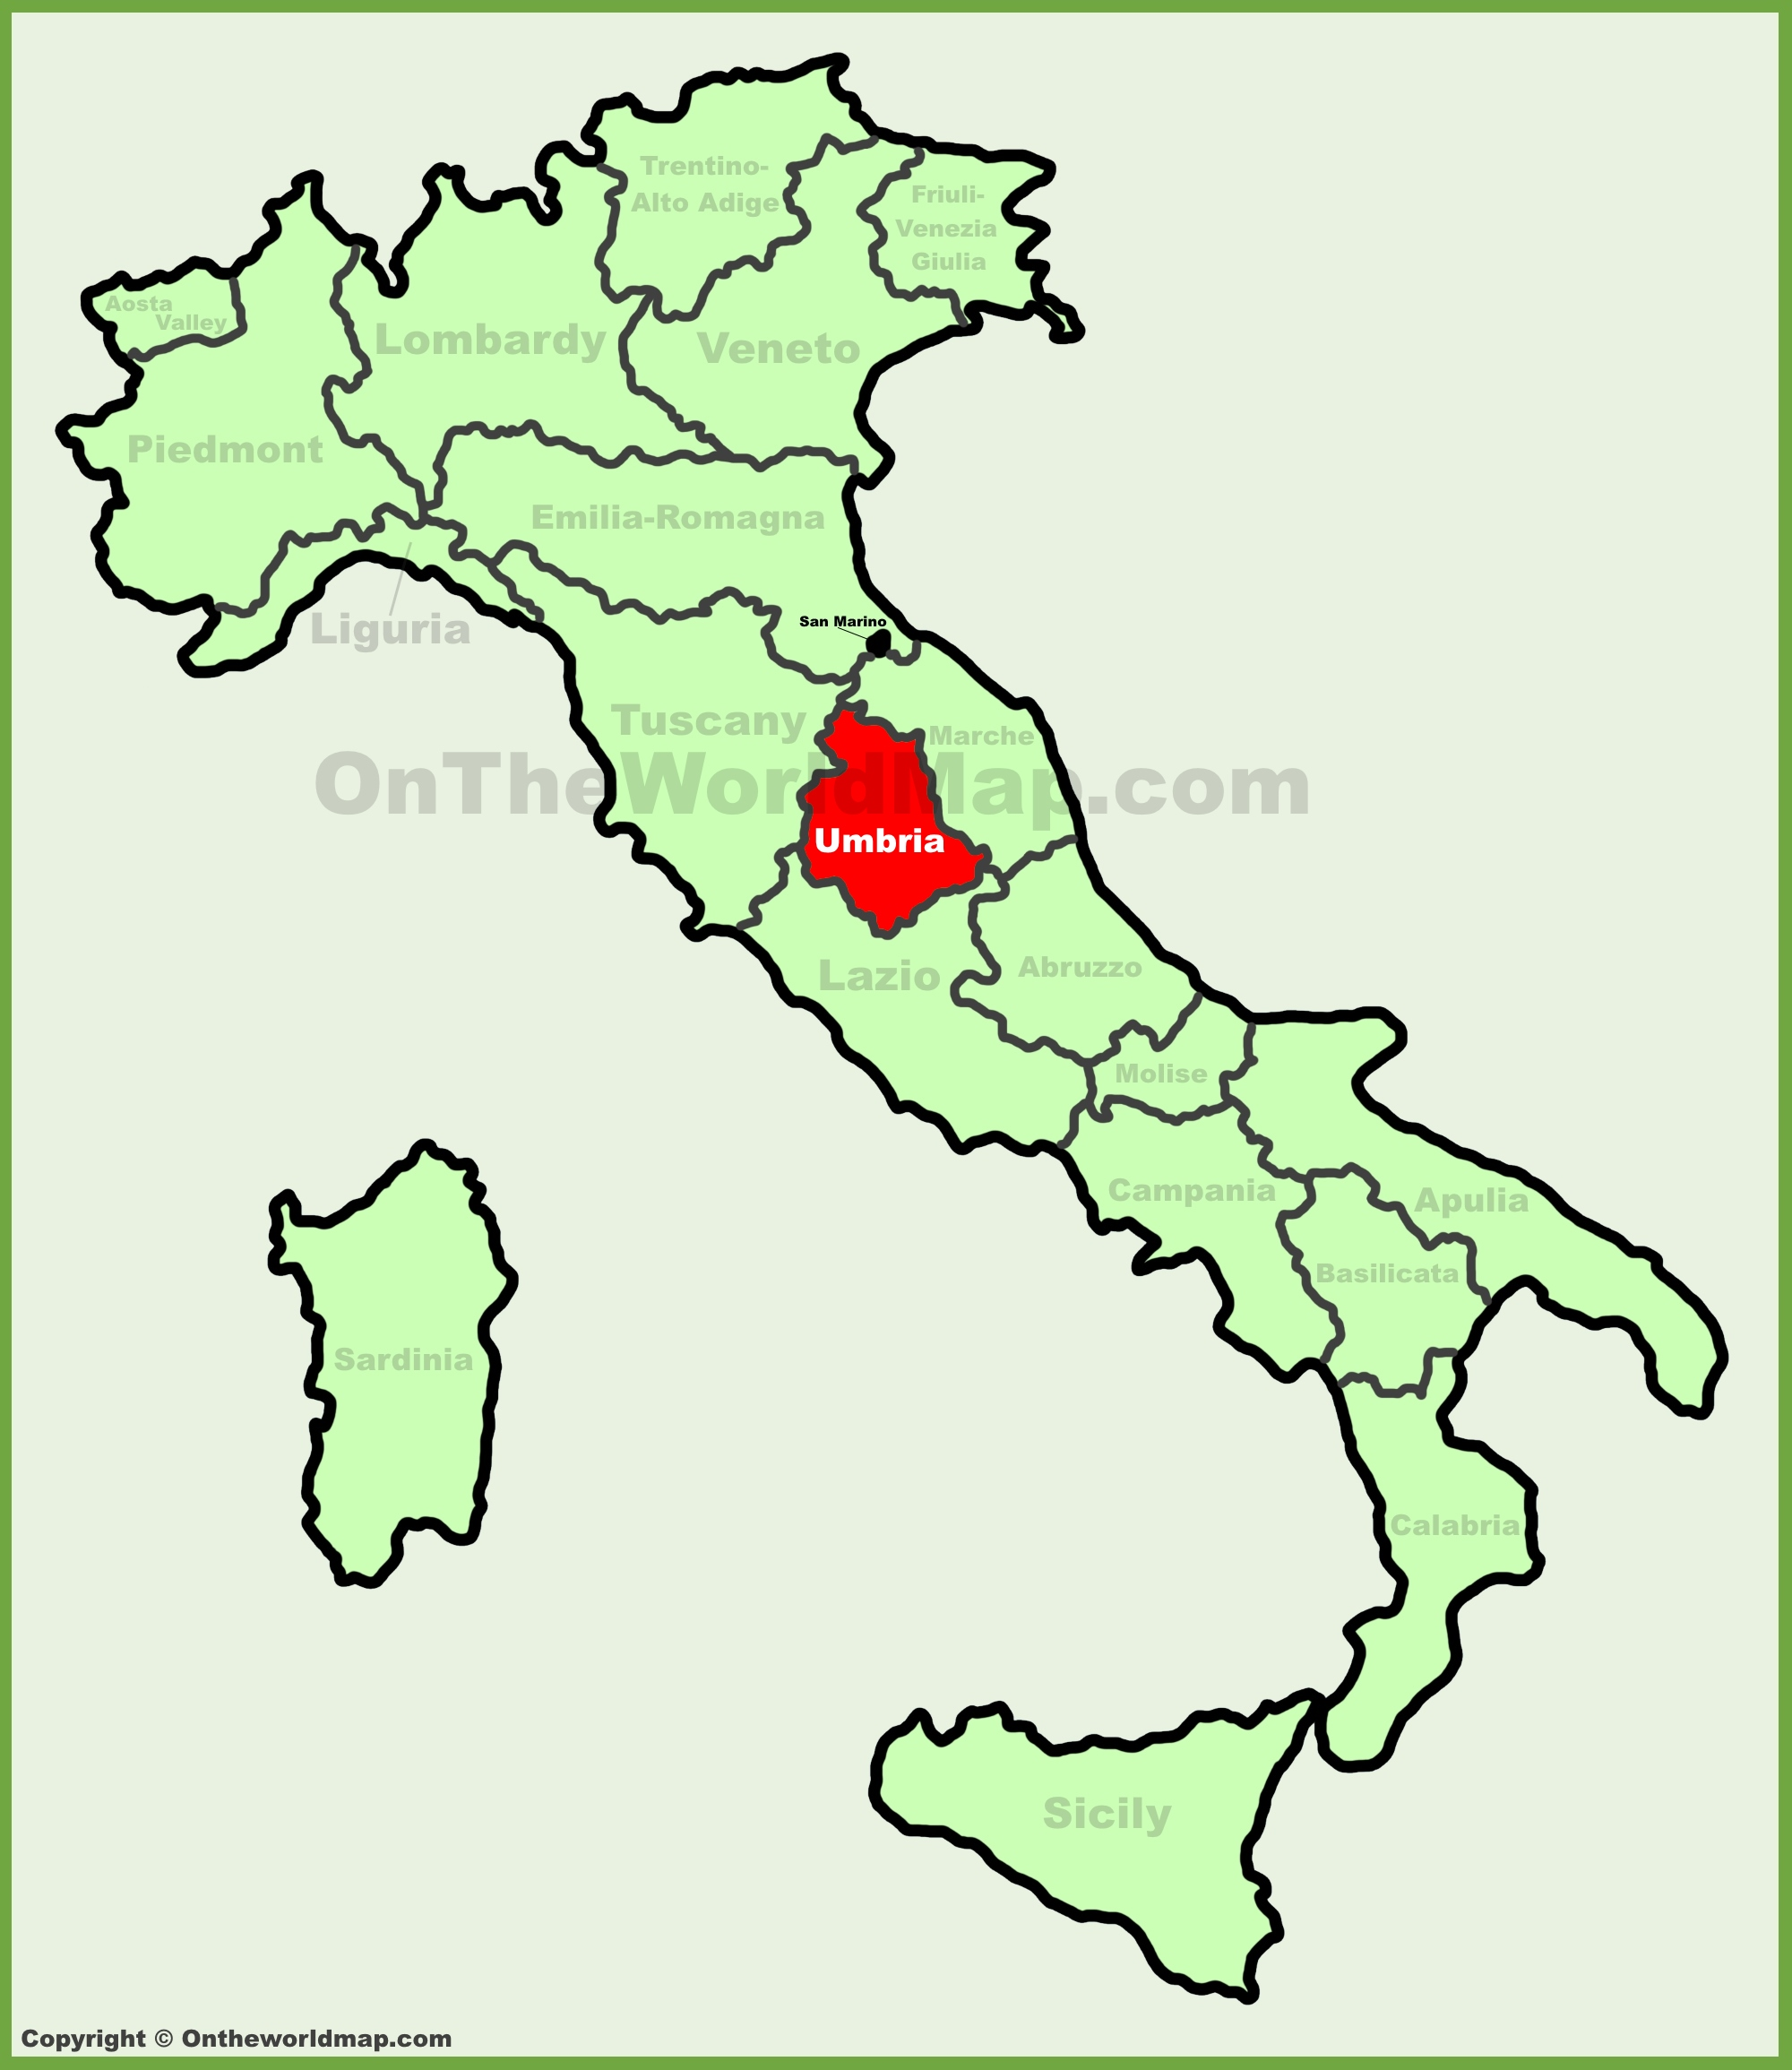 Umbria location on the Italy map